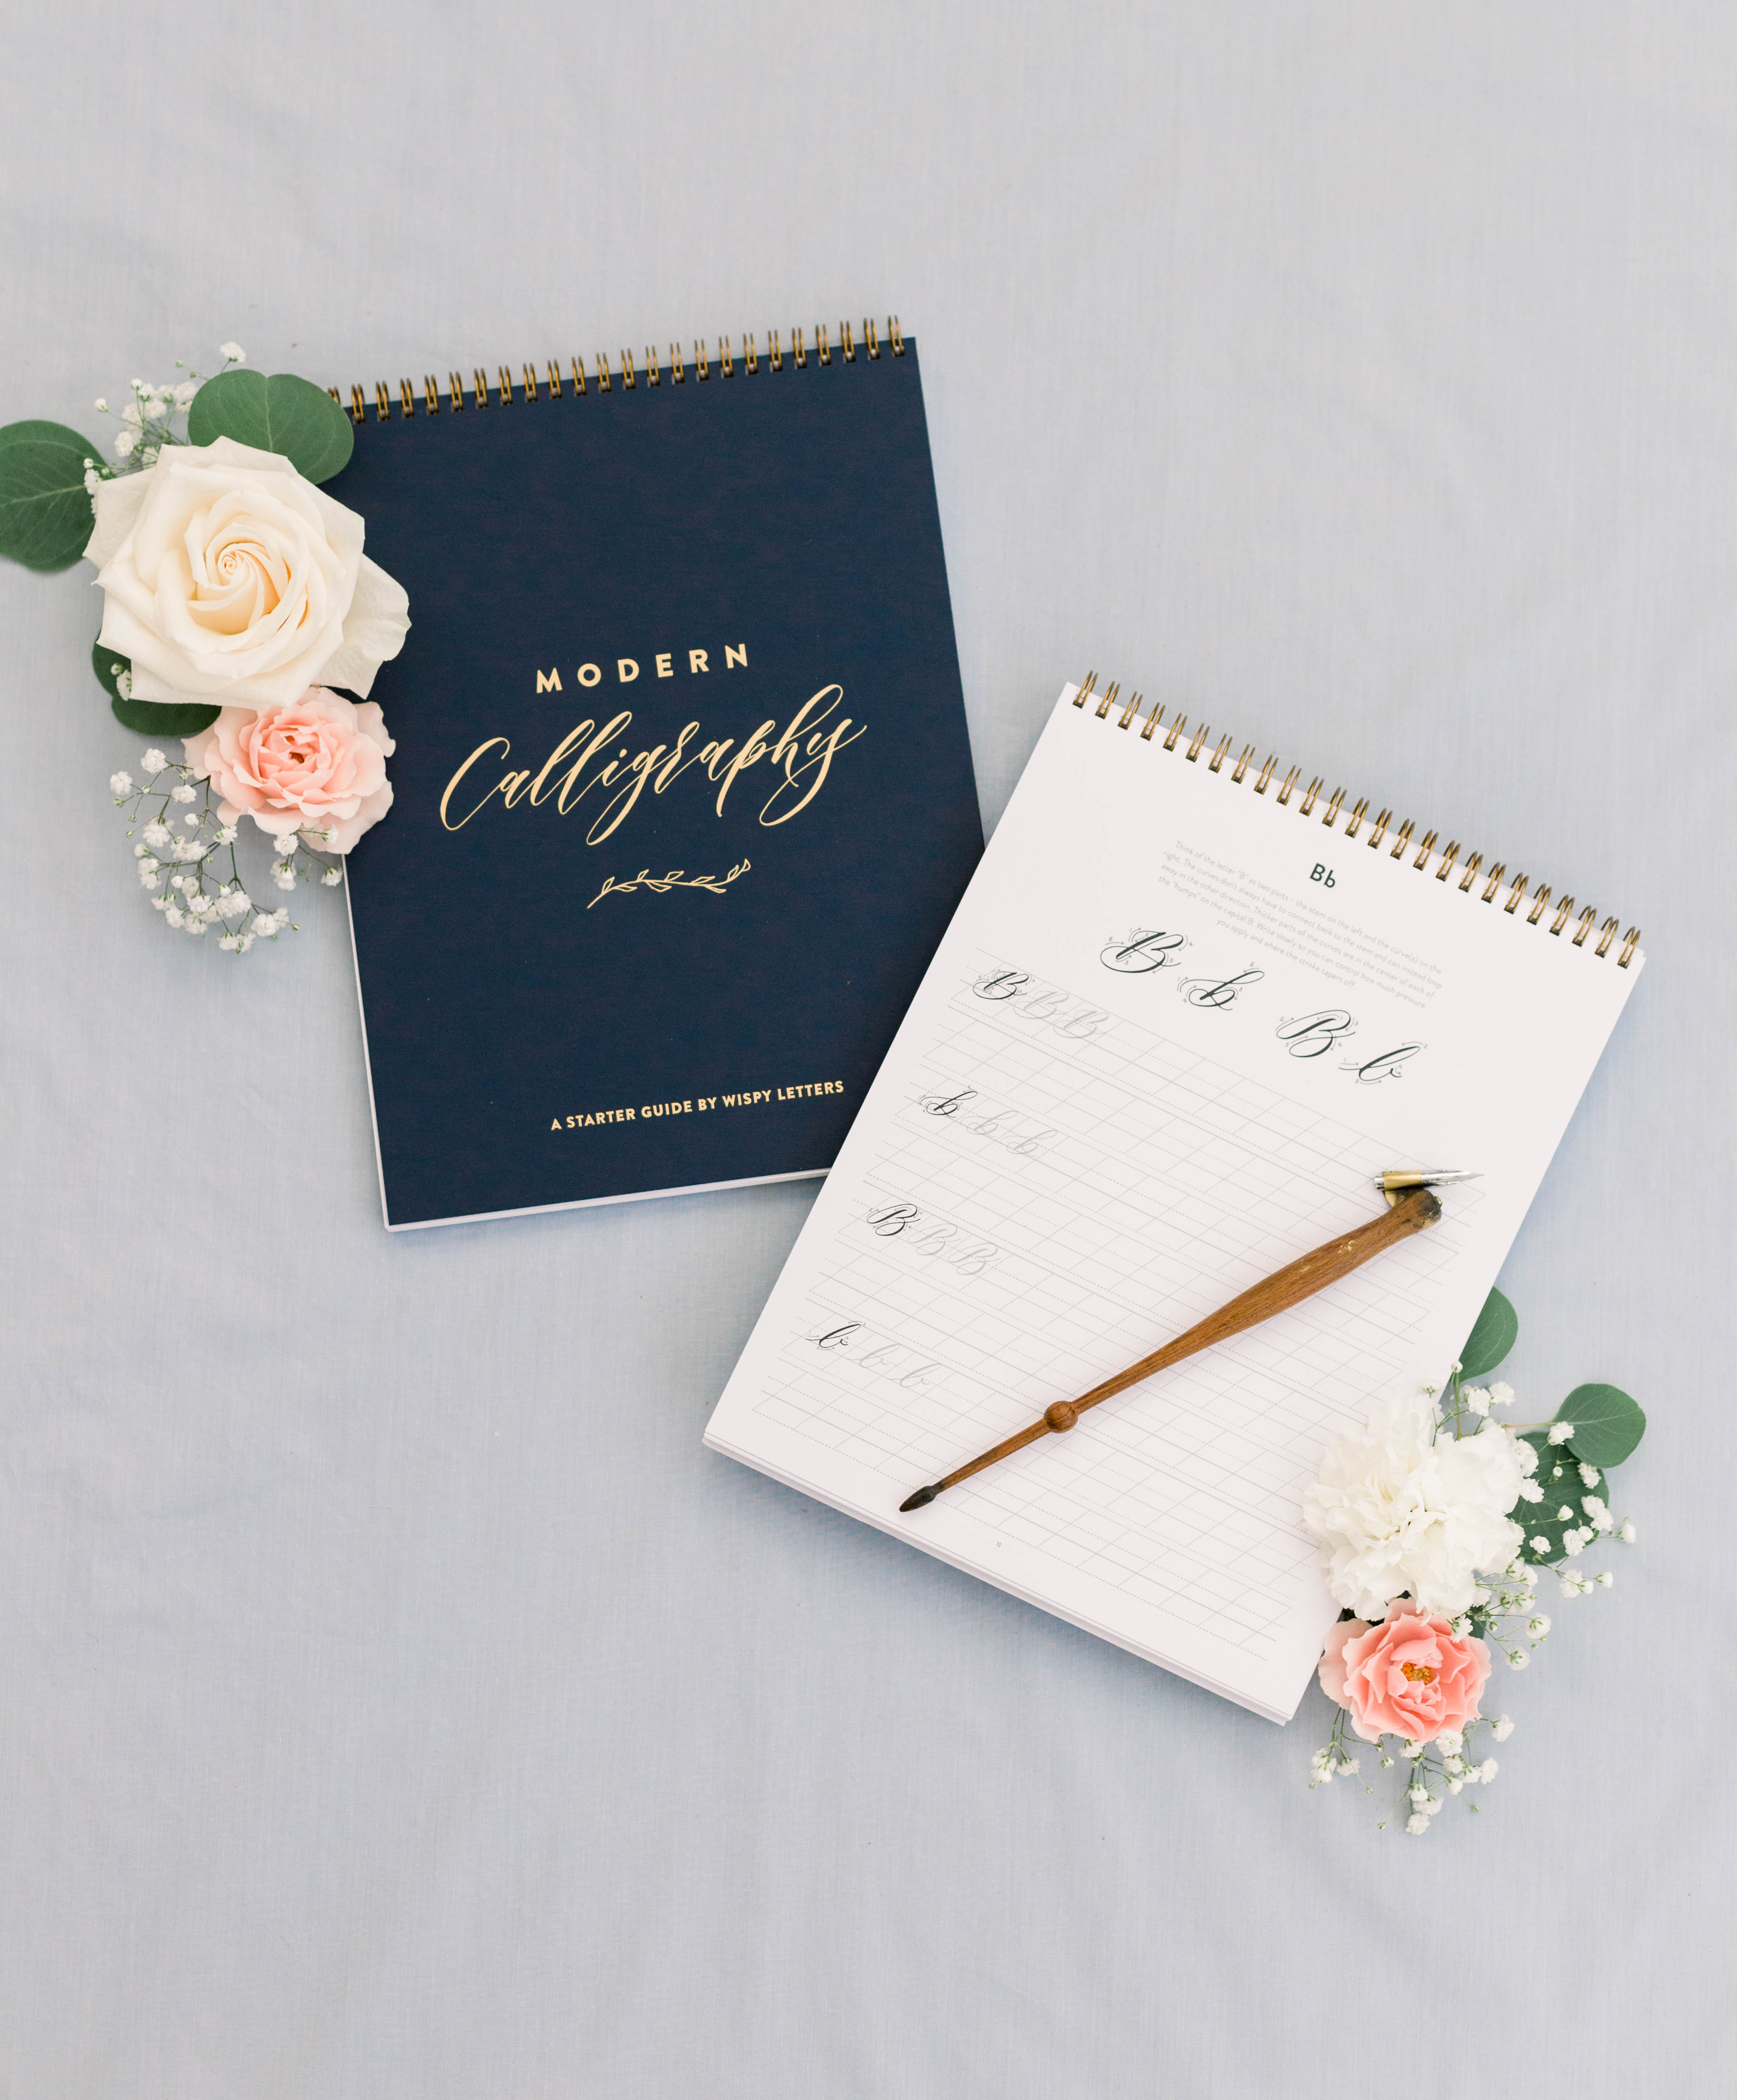 Modern Calligraphy: A Starter Guide